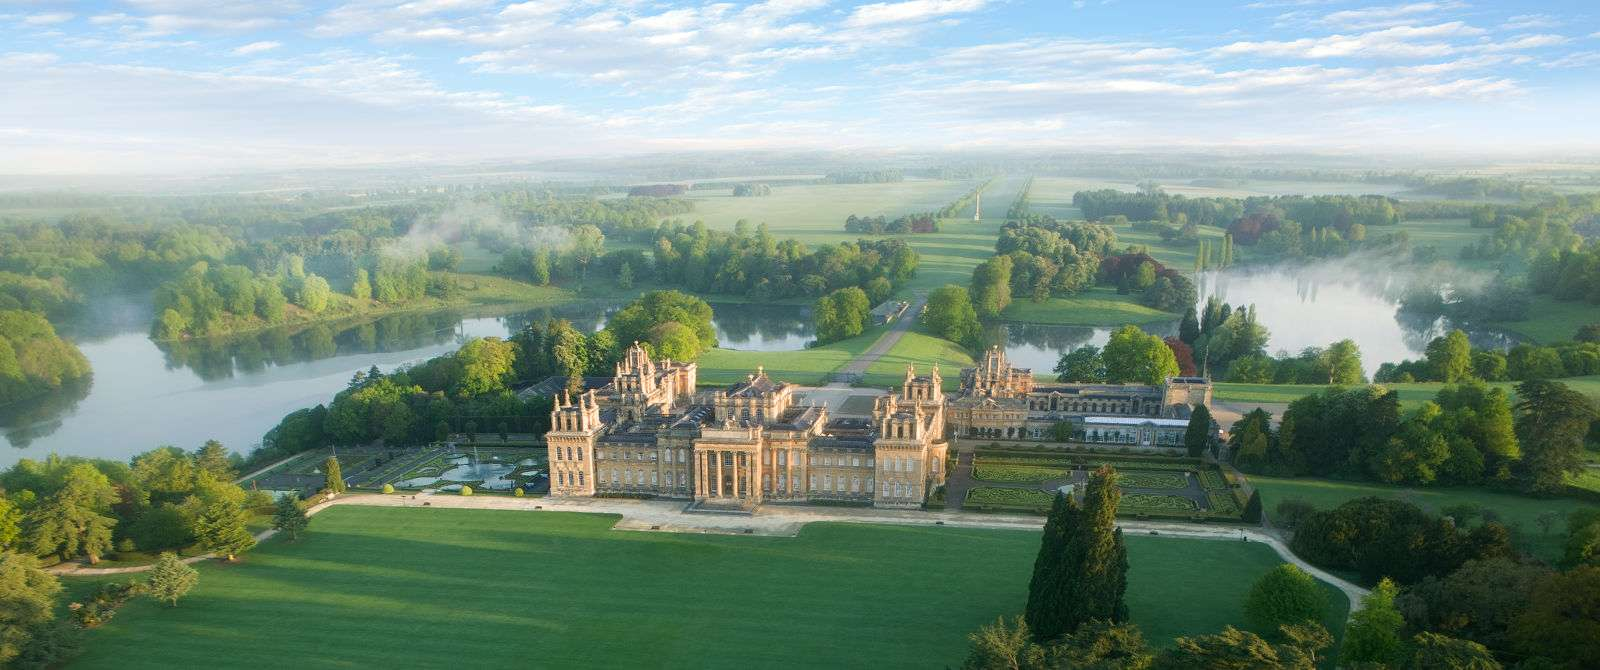 Blenheim Palace near White Hart Hotel DorchesterBletchley Park near White Hart Hotel DorchesterBletchley Park near White Hart Hotel DorchesterBletchley Park near White Hart Hotel DorchesterBletchley Park near White Hart Hotel DorchesterBletchley Park near White Hart Hotel Dorchester